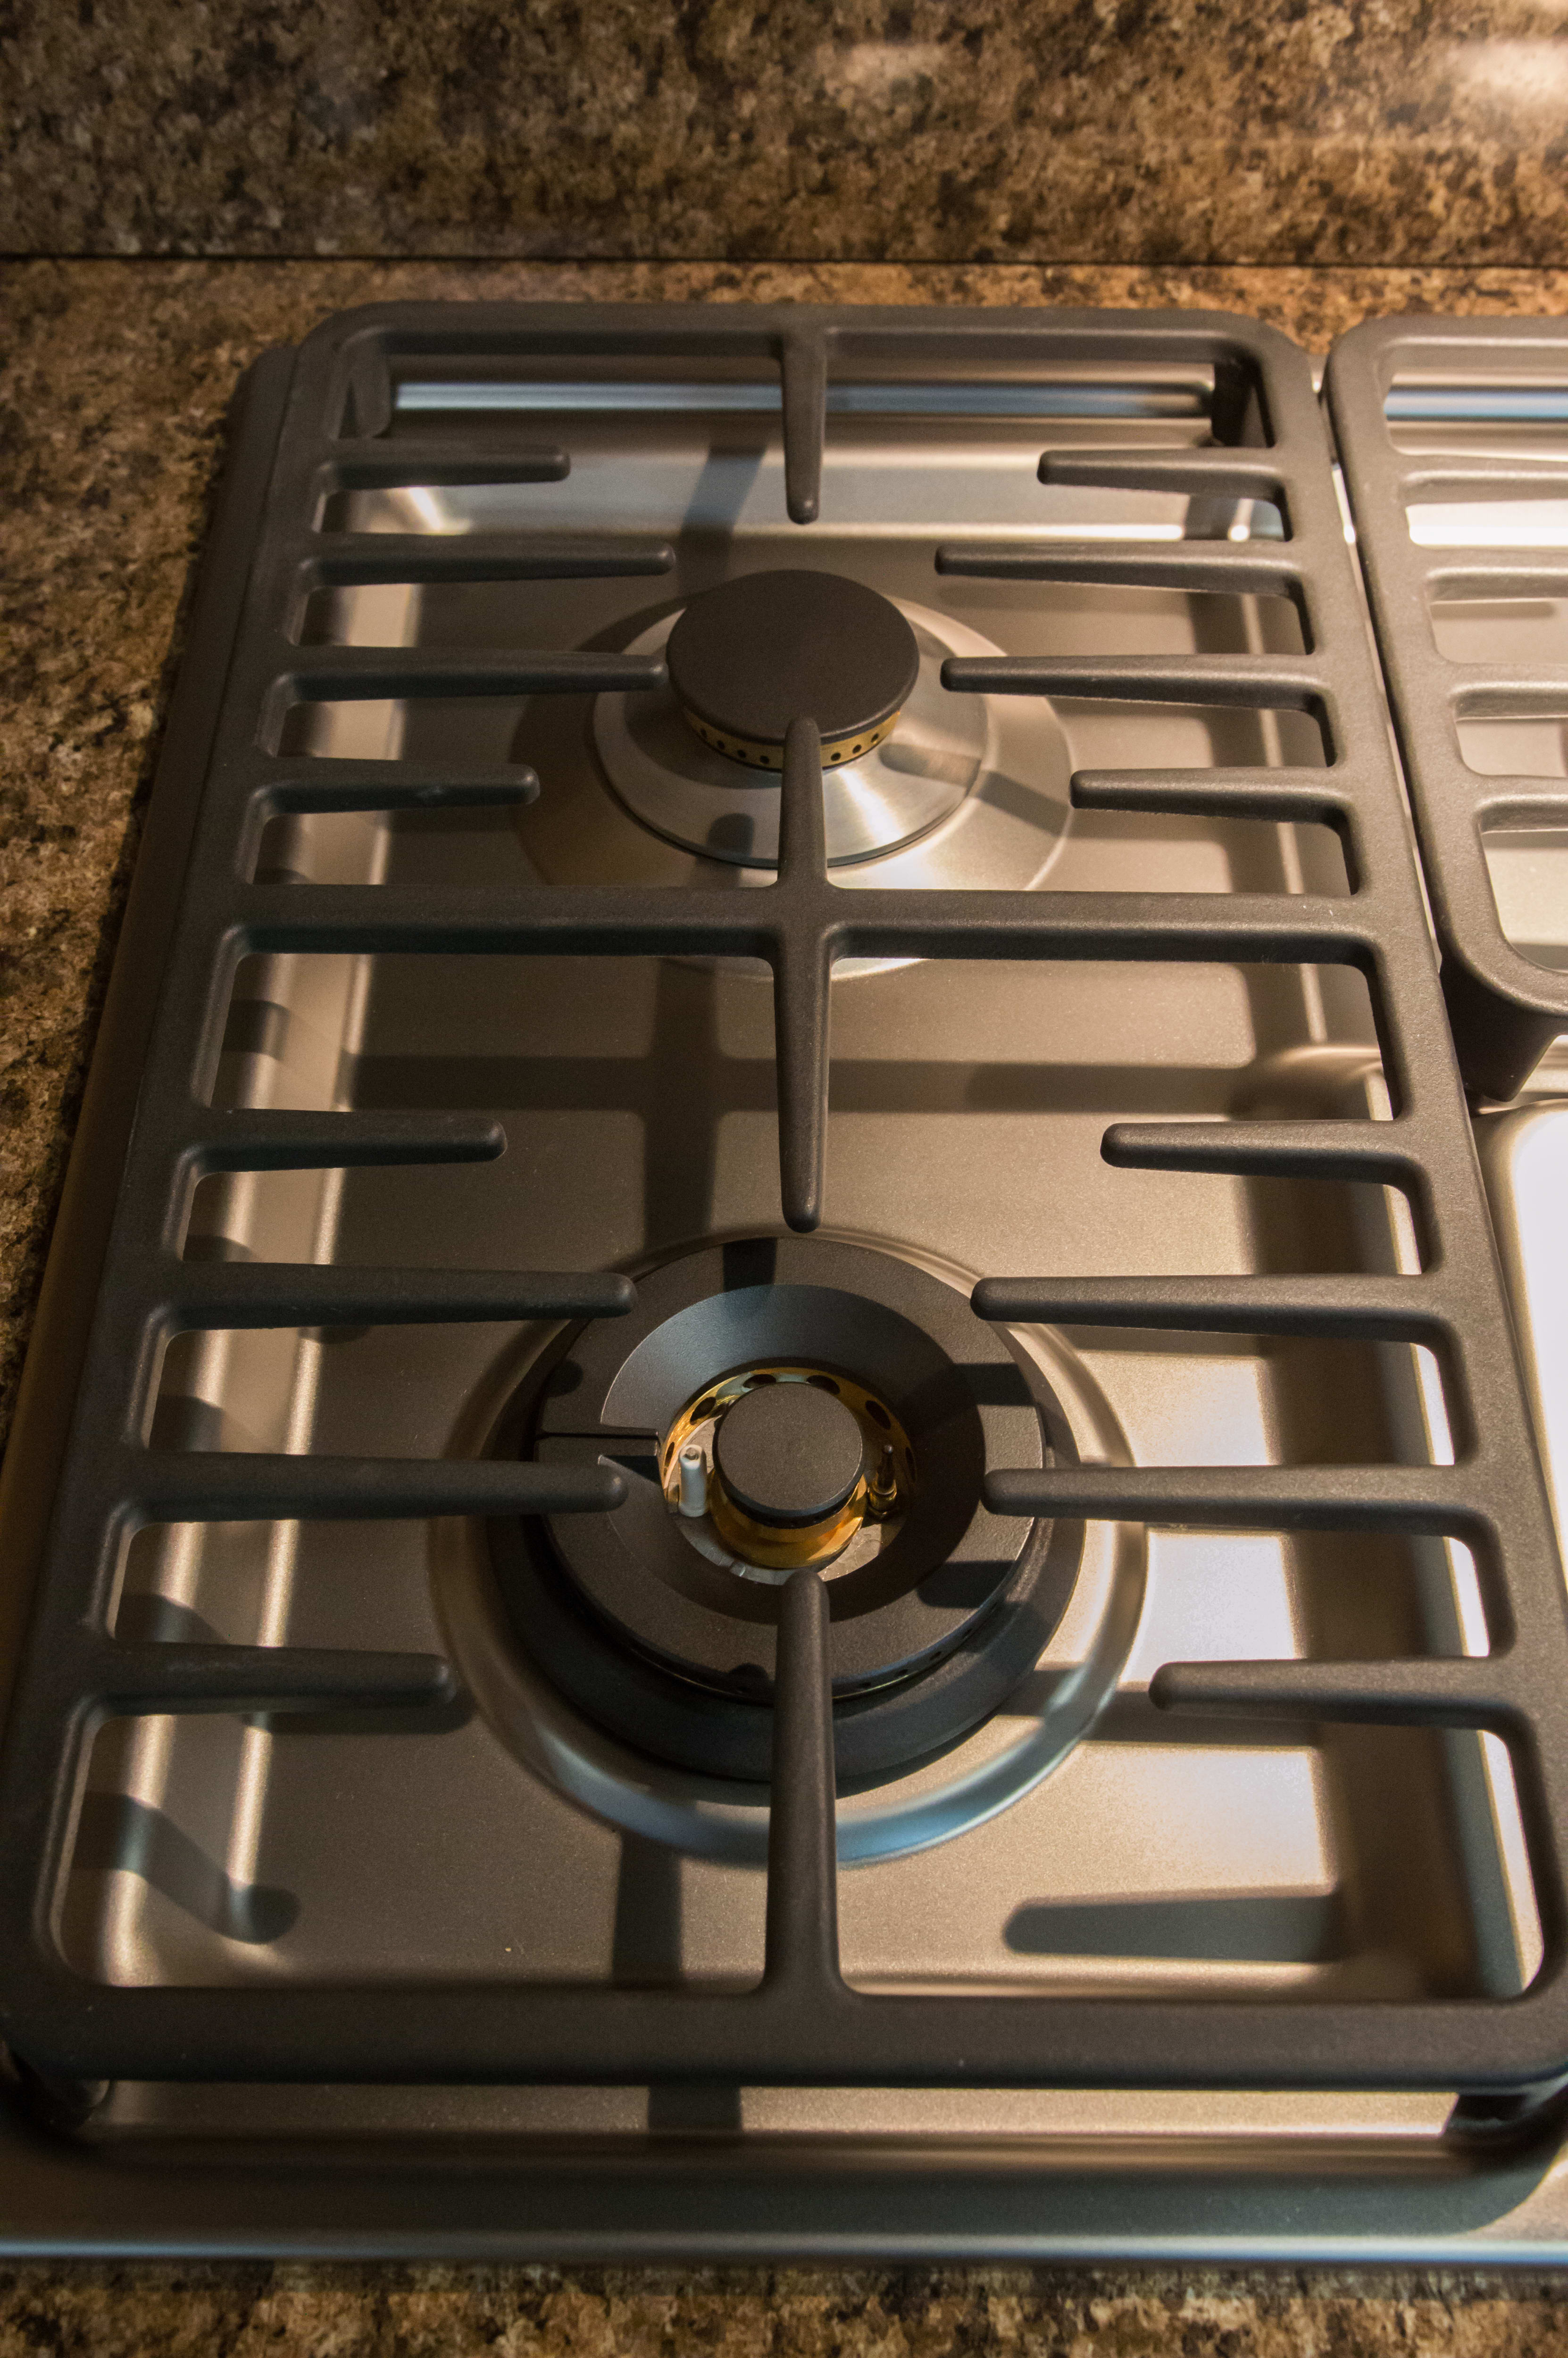 Linear grates on left side of cooktop